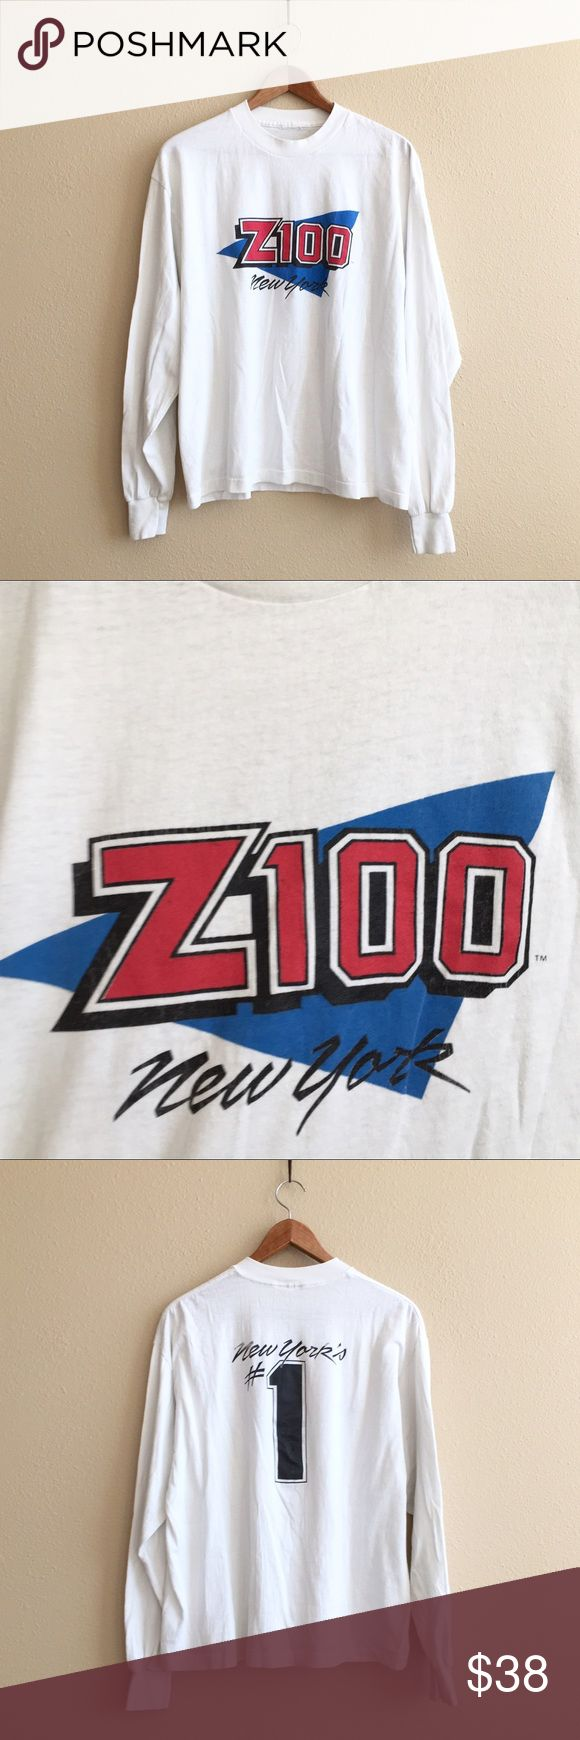 Z100 NY Radio Tee Perfectly worn in long sleeve tee with Z100 on front and New York's #1 on back. There are a few small discolorations that were hard to capture. Throw this on under a puffer vest!  BRAND: - MATERIAL: 50/50 YEAR/ERA: late 80s LABEL SIZE: - BEST FIT: S/M  MEASUREMENTS: Chest 22 inches  Length 25.5 inches    I do not model or trade, sorry!  Check out my closet for more vintage! Vintage Tops Tees - Long Sleeve